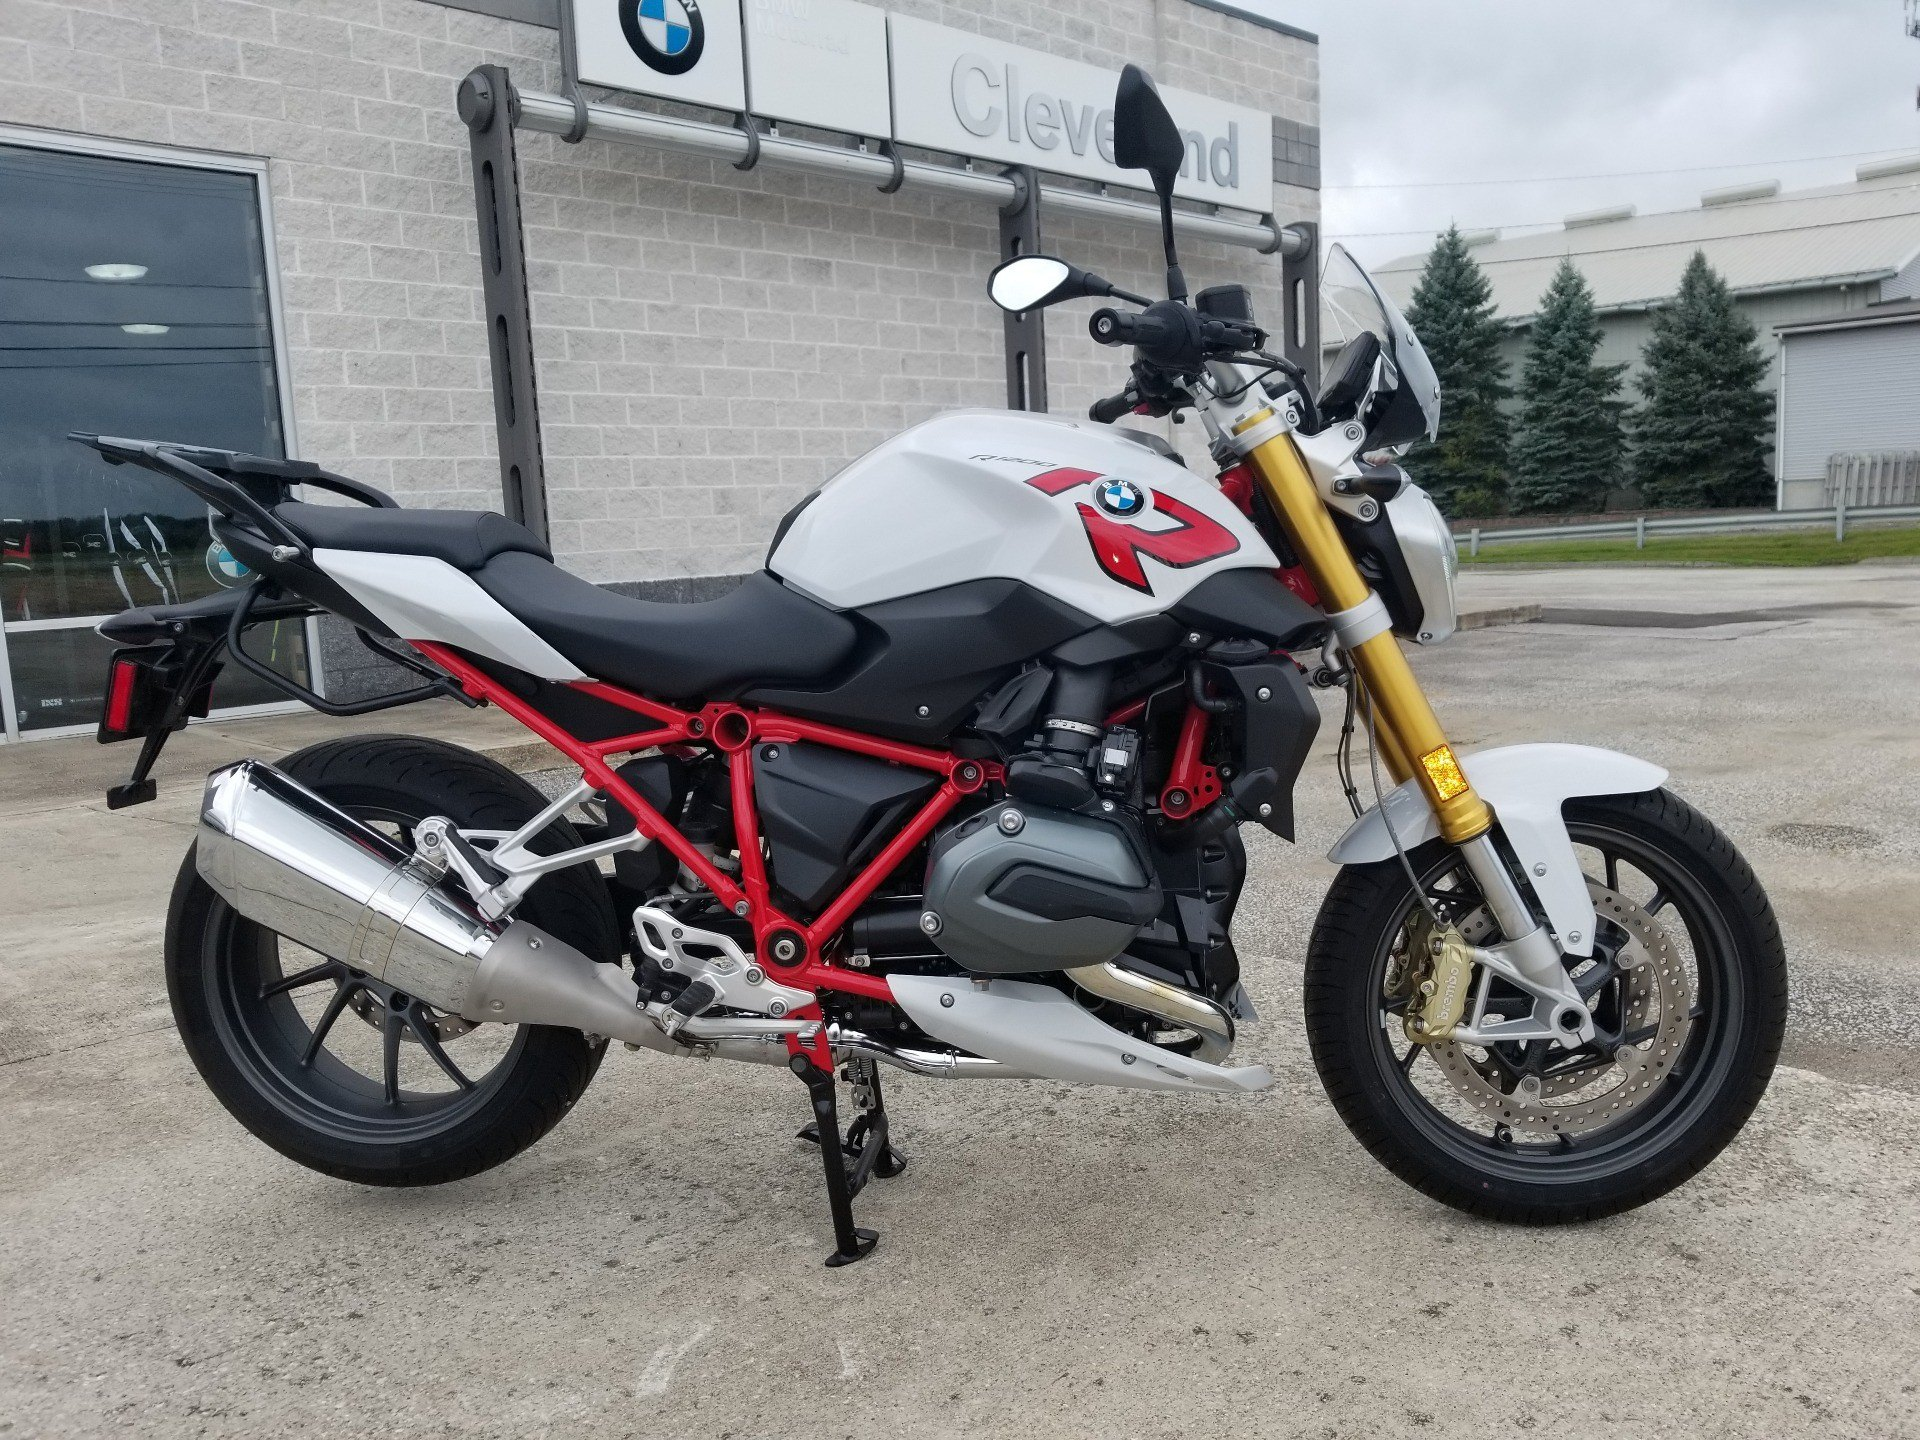 Used 2016 Bmw R 1200 R Motorcycles In Aurora Oh Stock Number N A